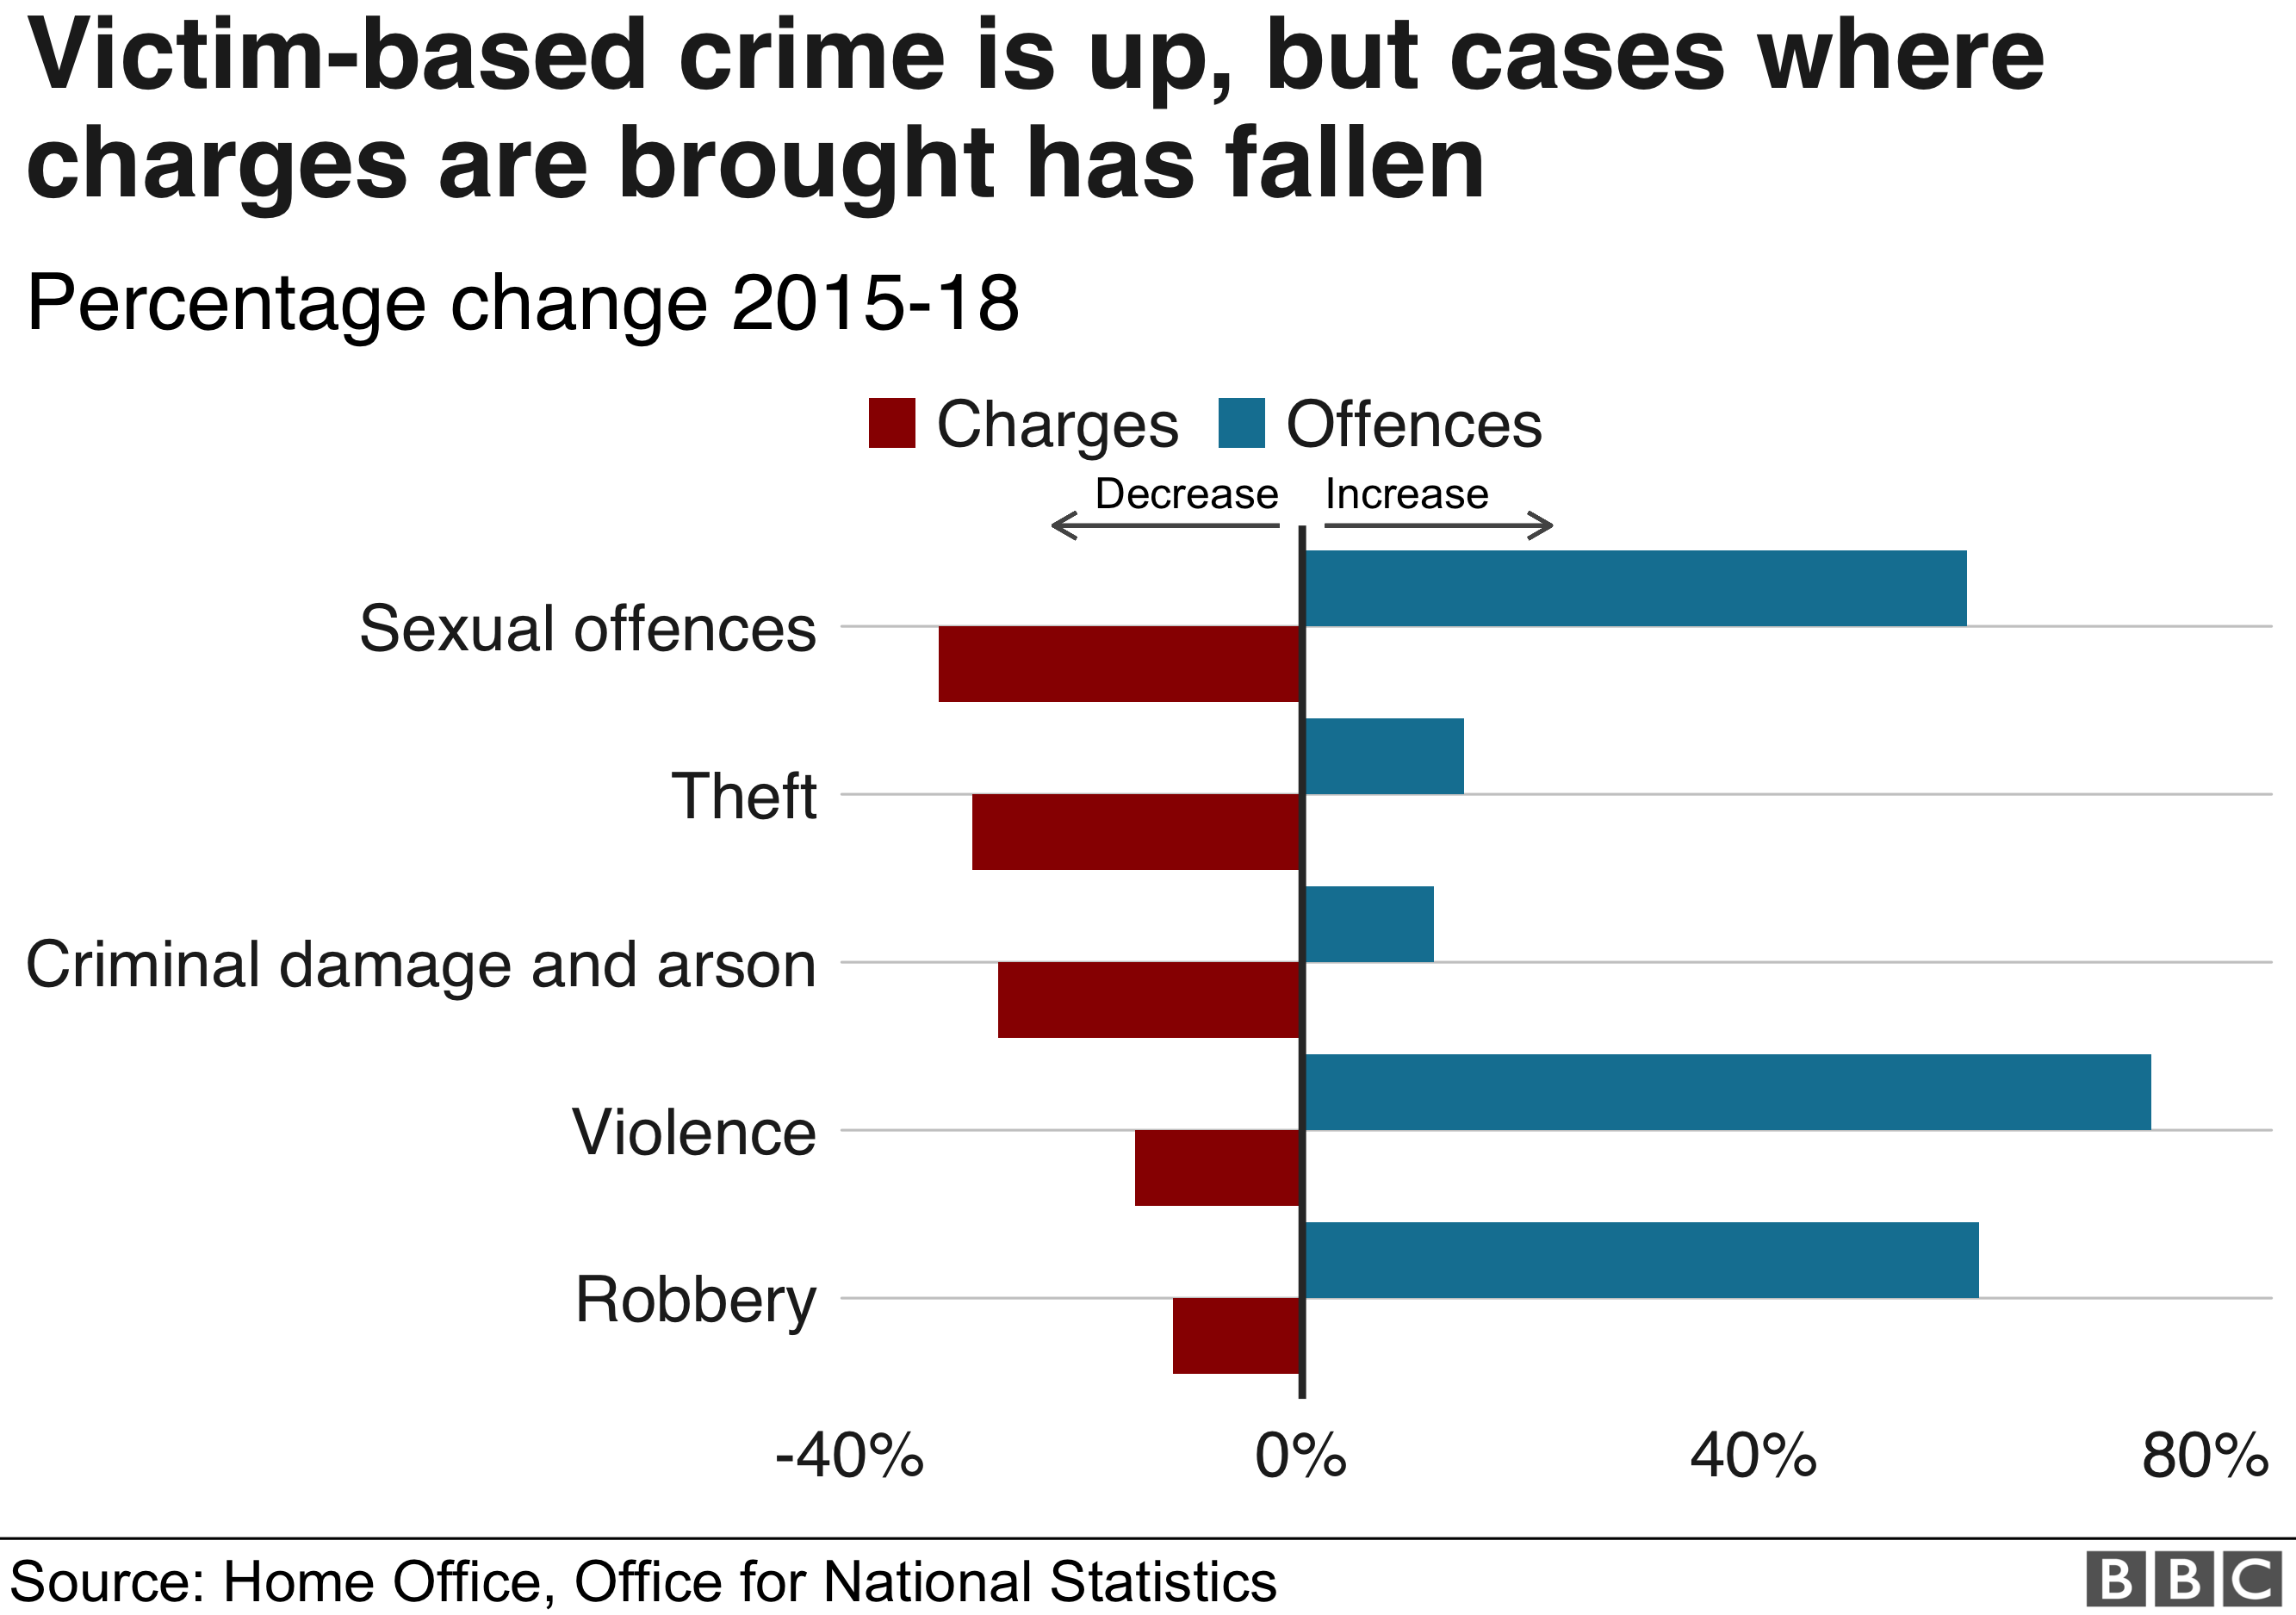 A chart showing the rise in victim-based crime